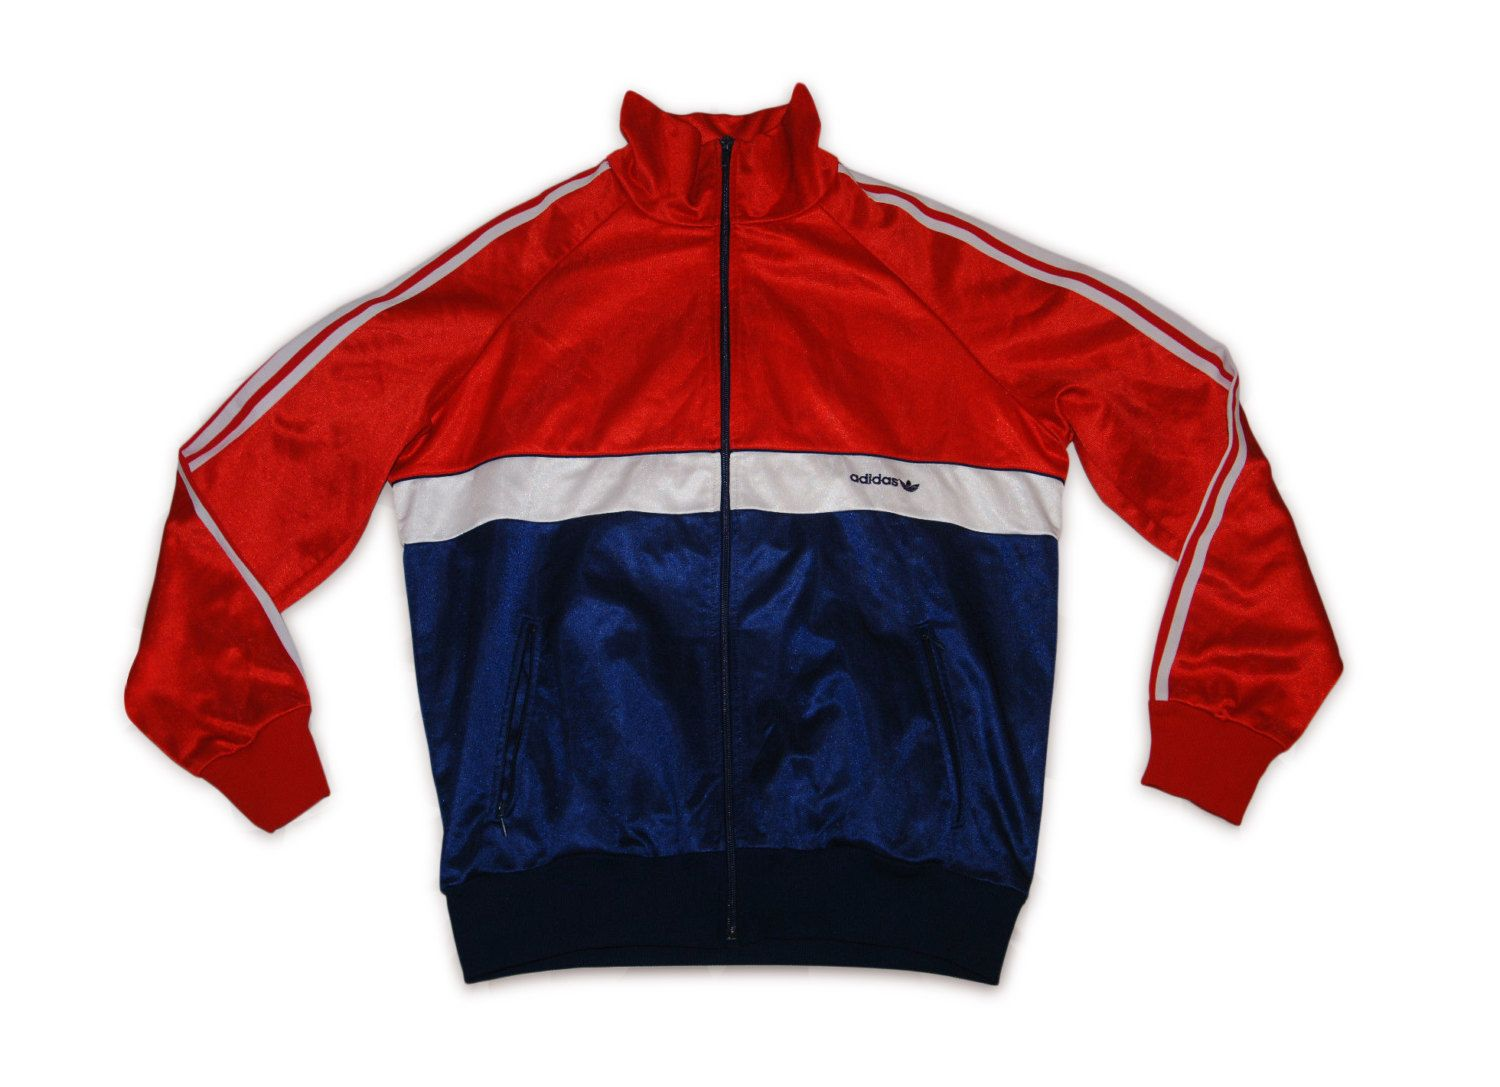 08970be54571 Vintage 80S Adidas Tracksuit top jacket shine nylon Blue Red White IBIZA M  by VapeoVintage on Etsy